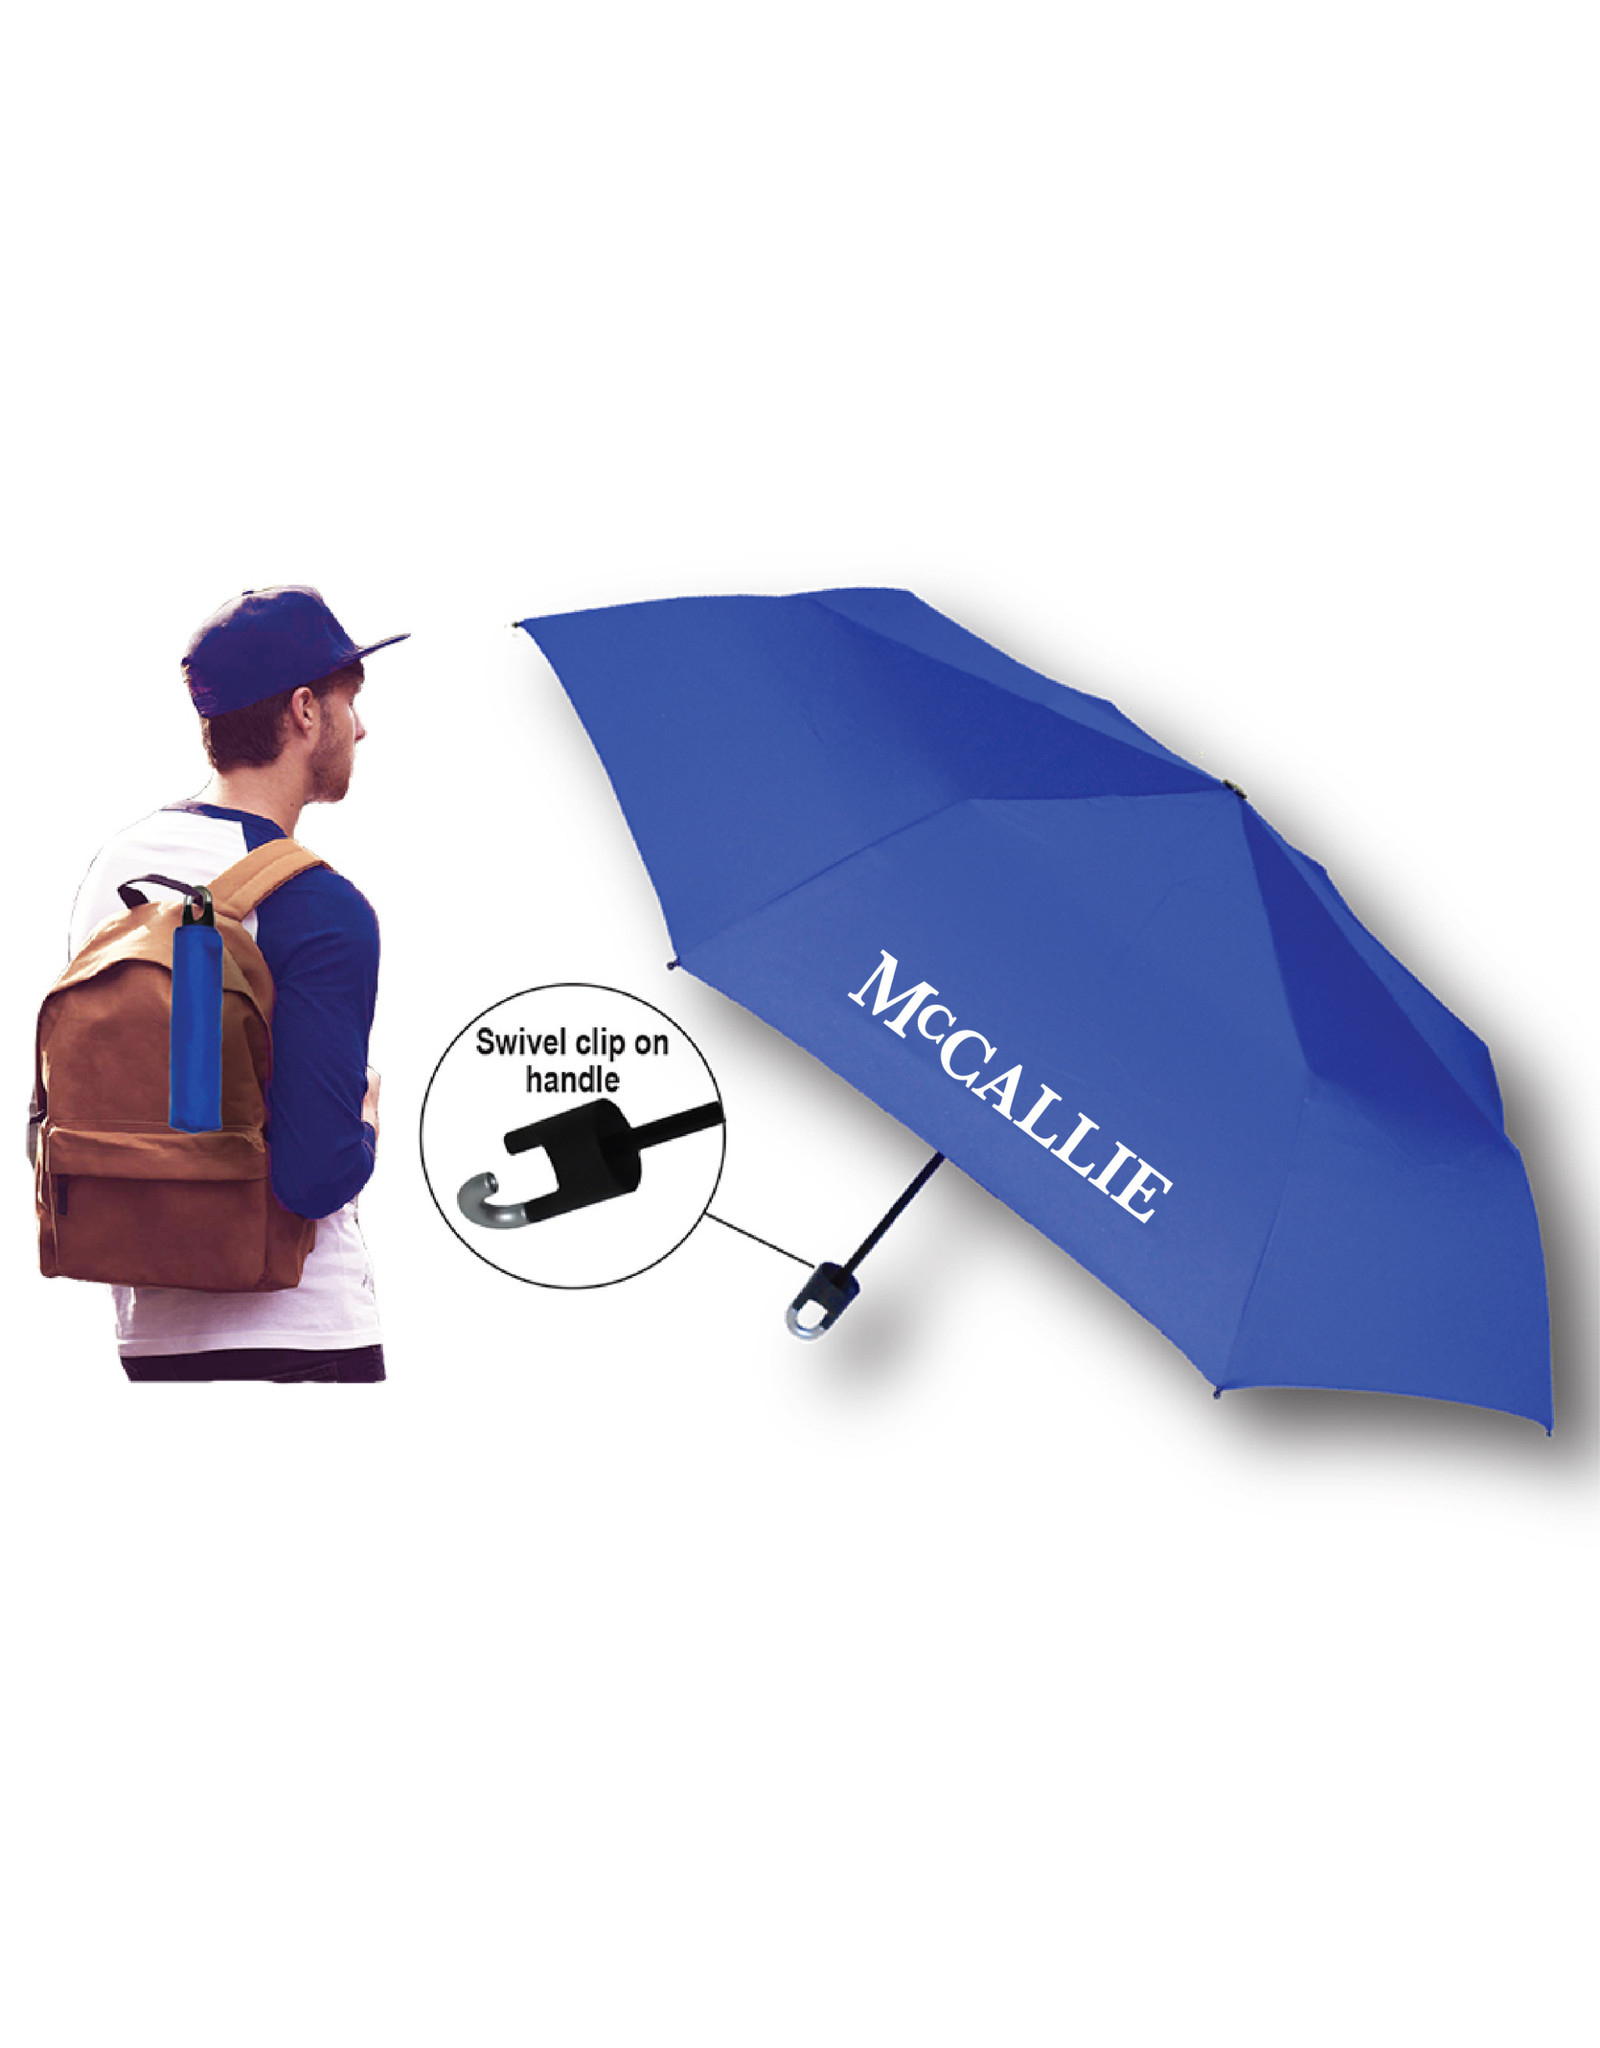 MINI CLIP UMBRELLA